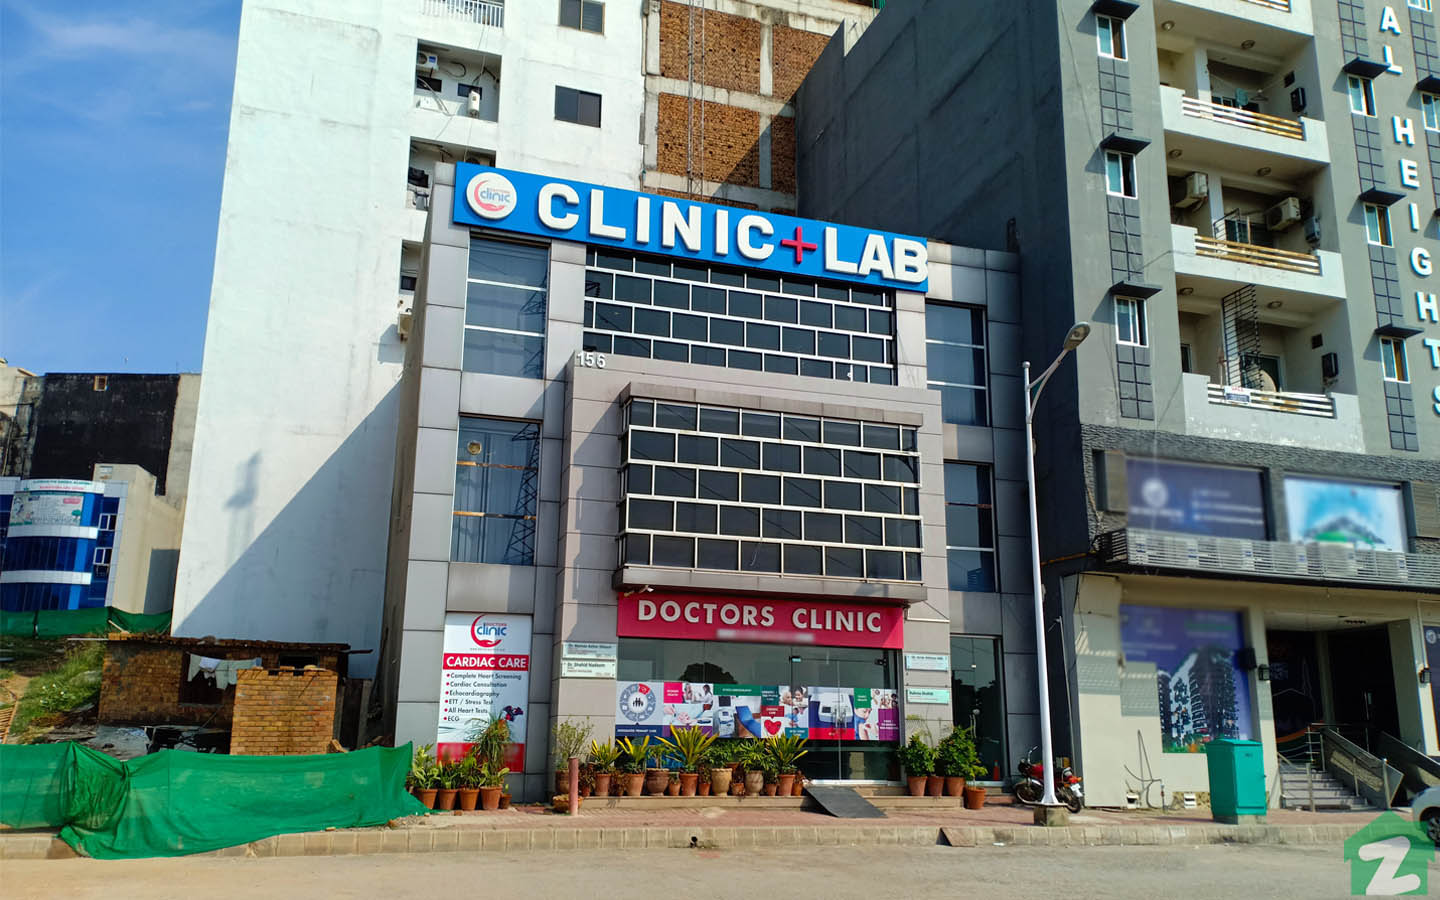 Several general physicians are available in Doctors Clinic